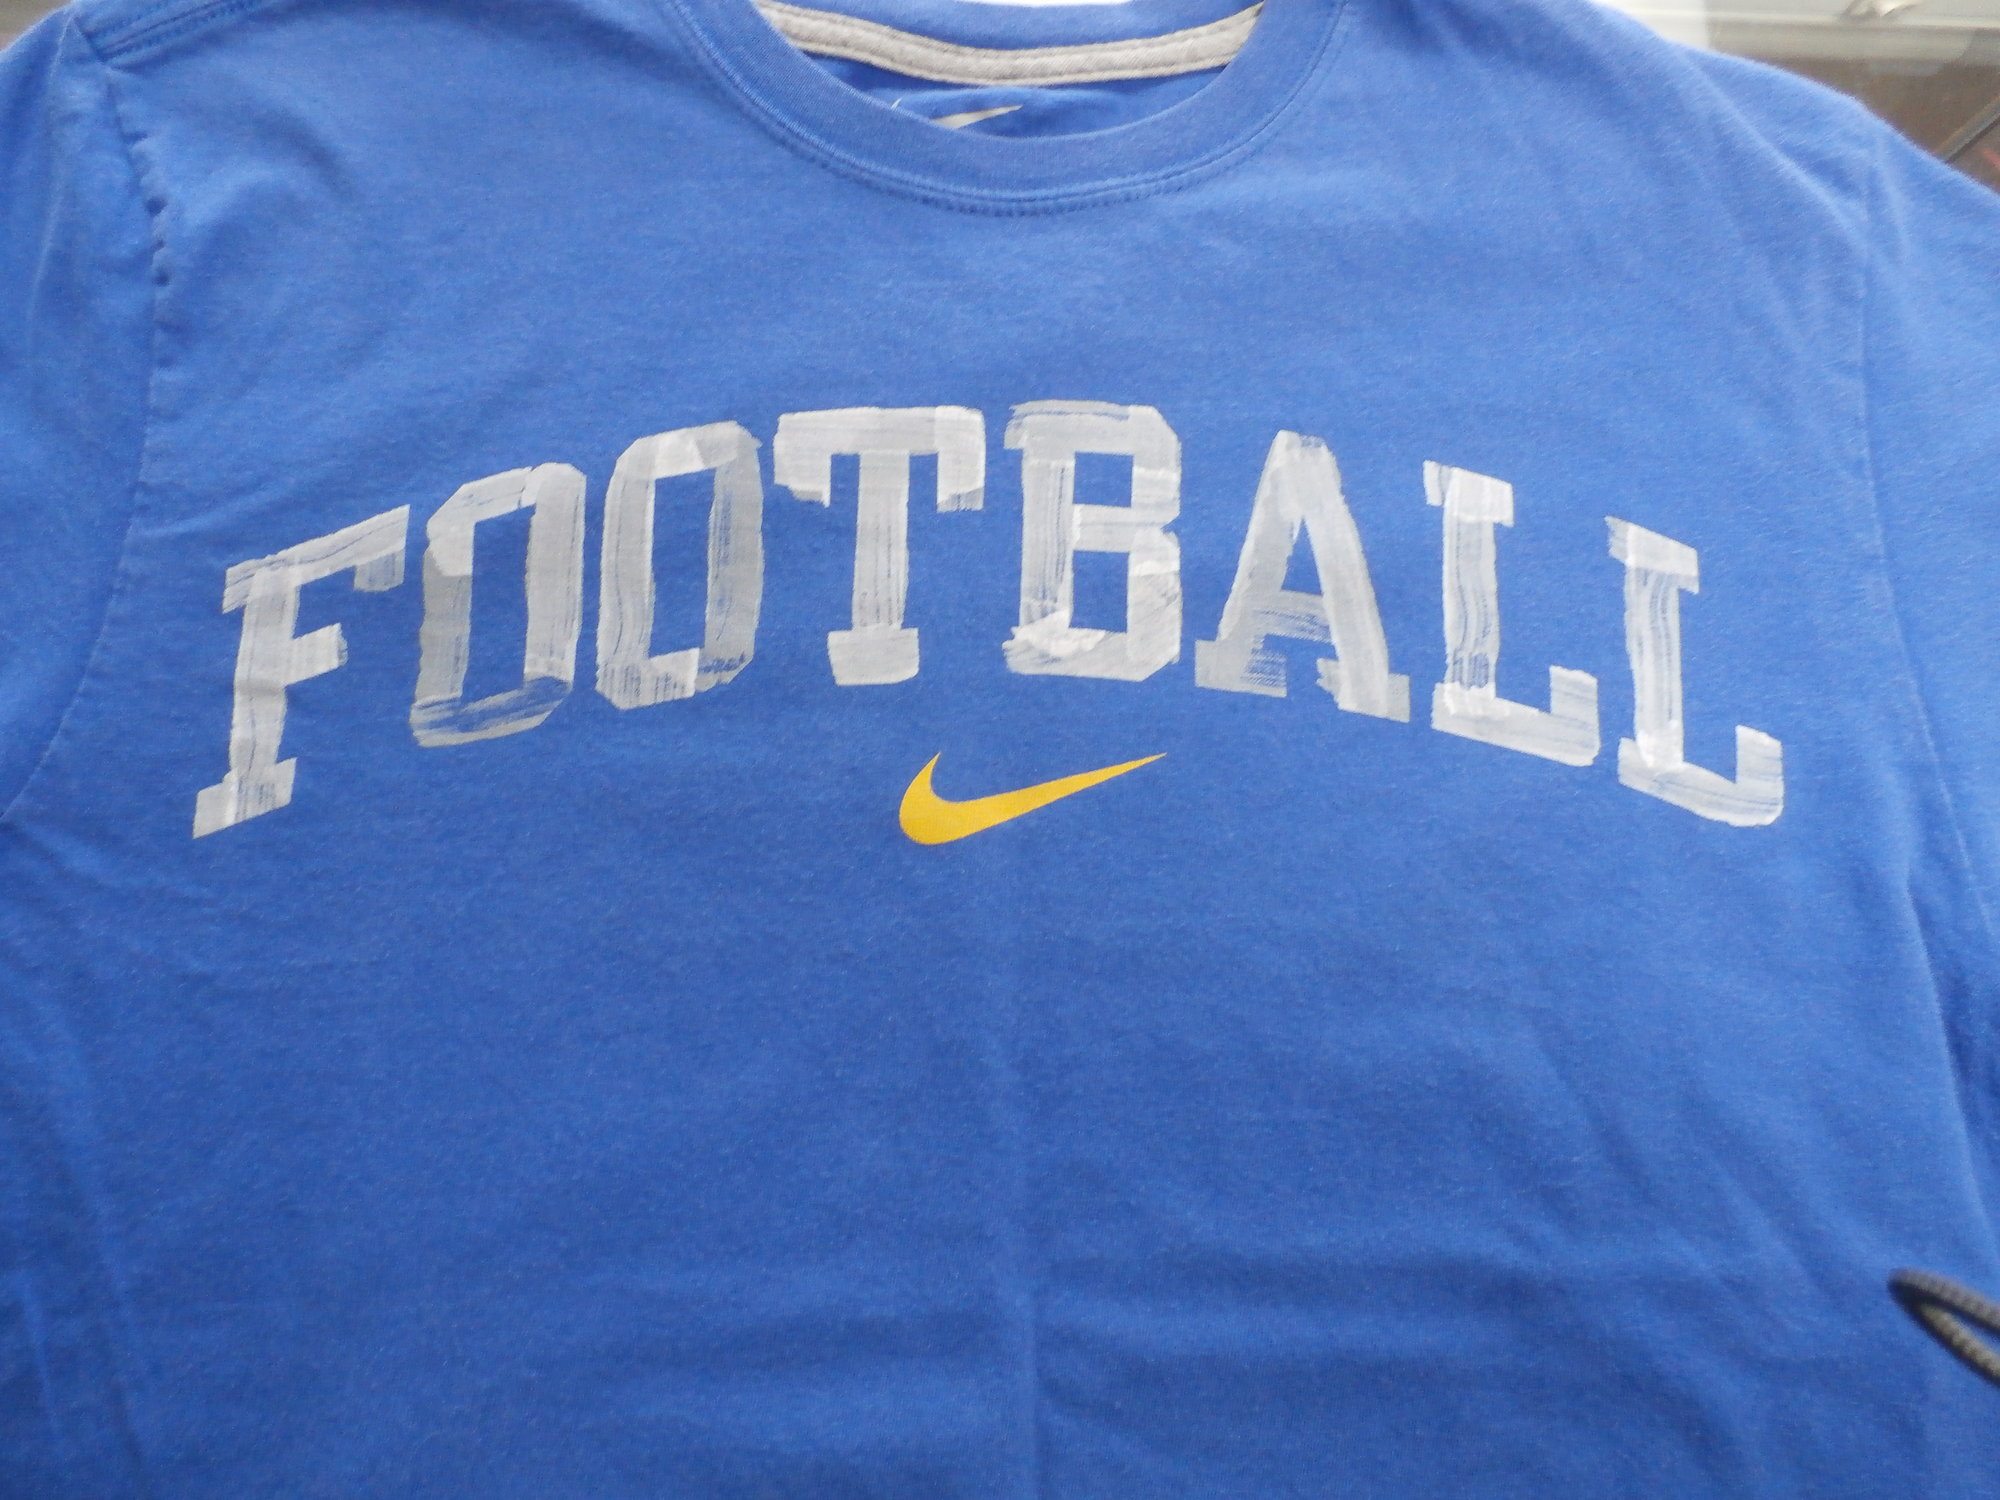 4a77dc047bc9 Men s Nike Football shirt size Large blue short sleeve  30097 br    Rating